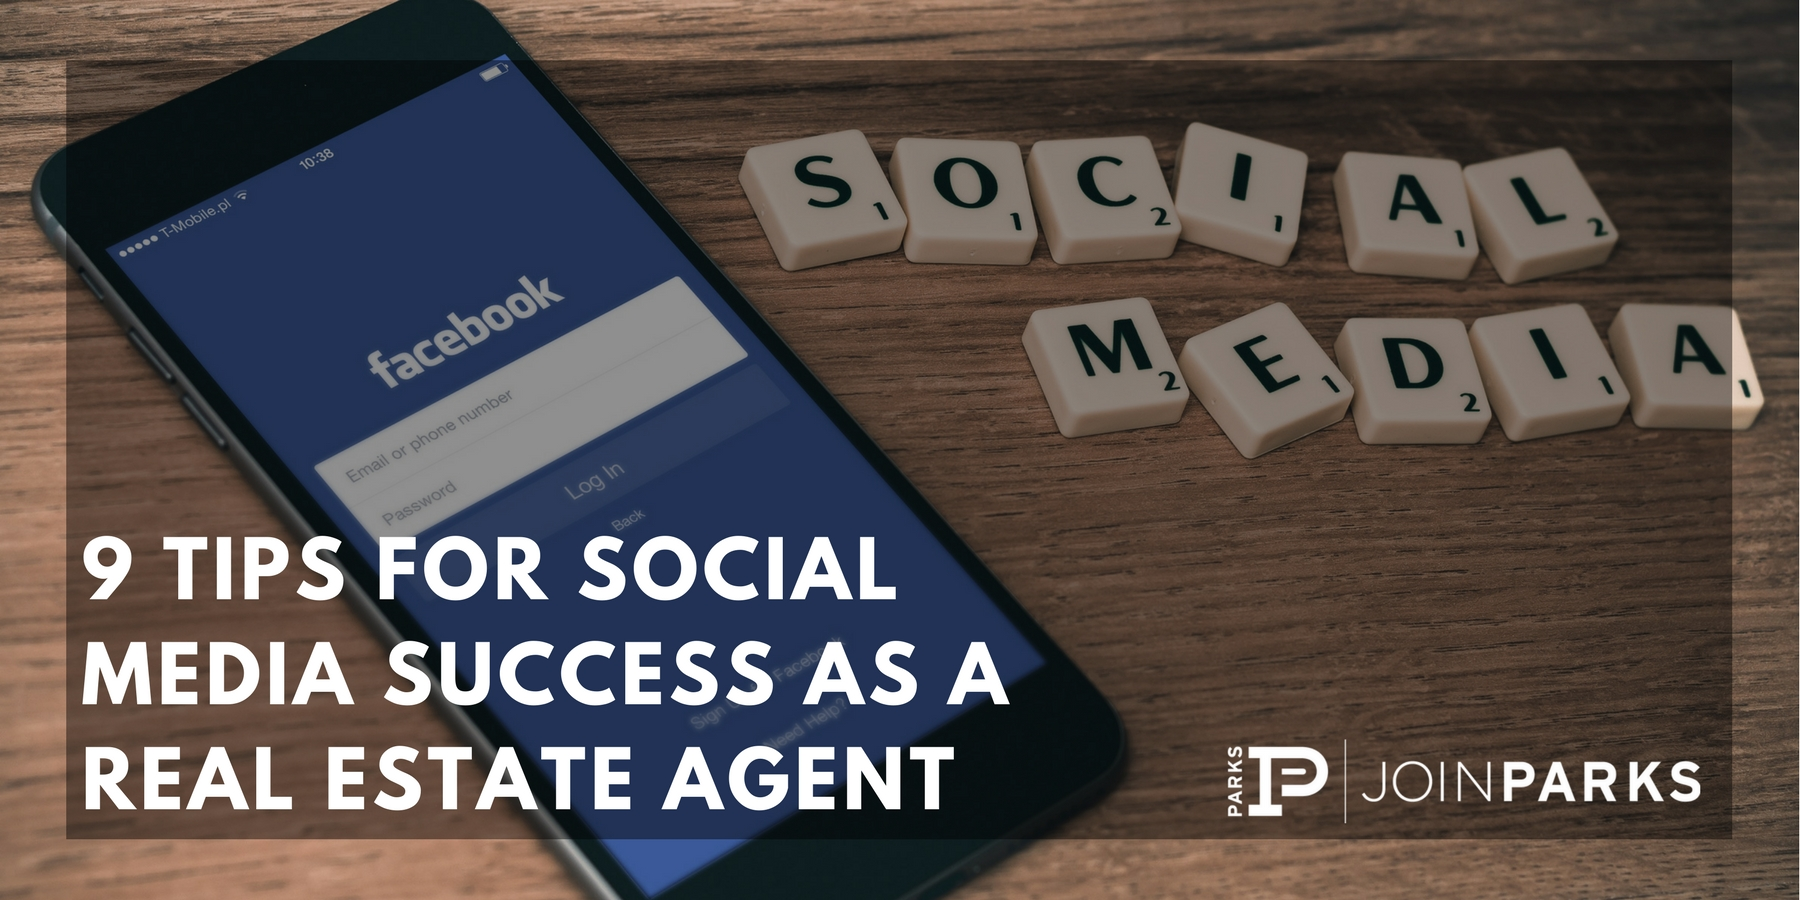 9 Tips for Social Media Success as a Real Estate Agent.jpg